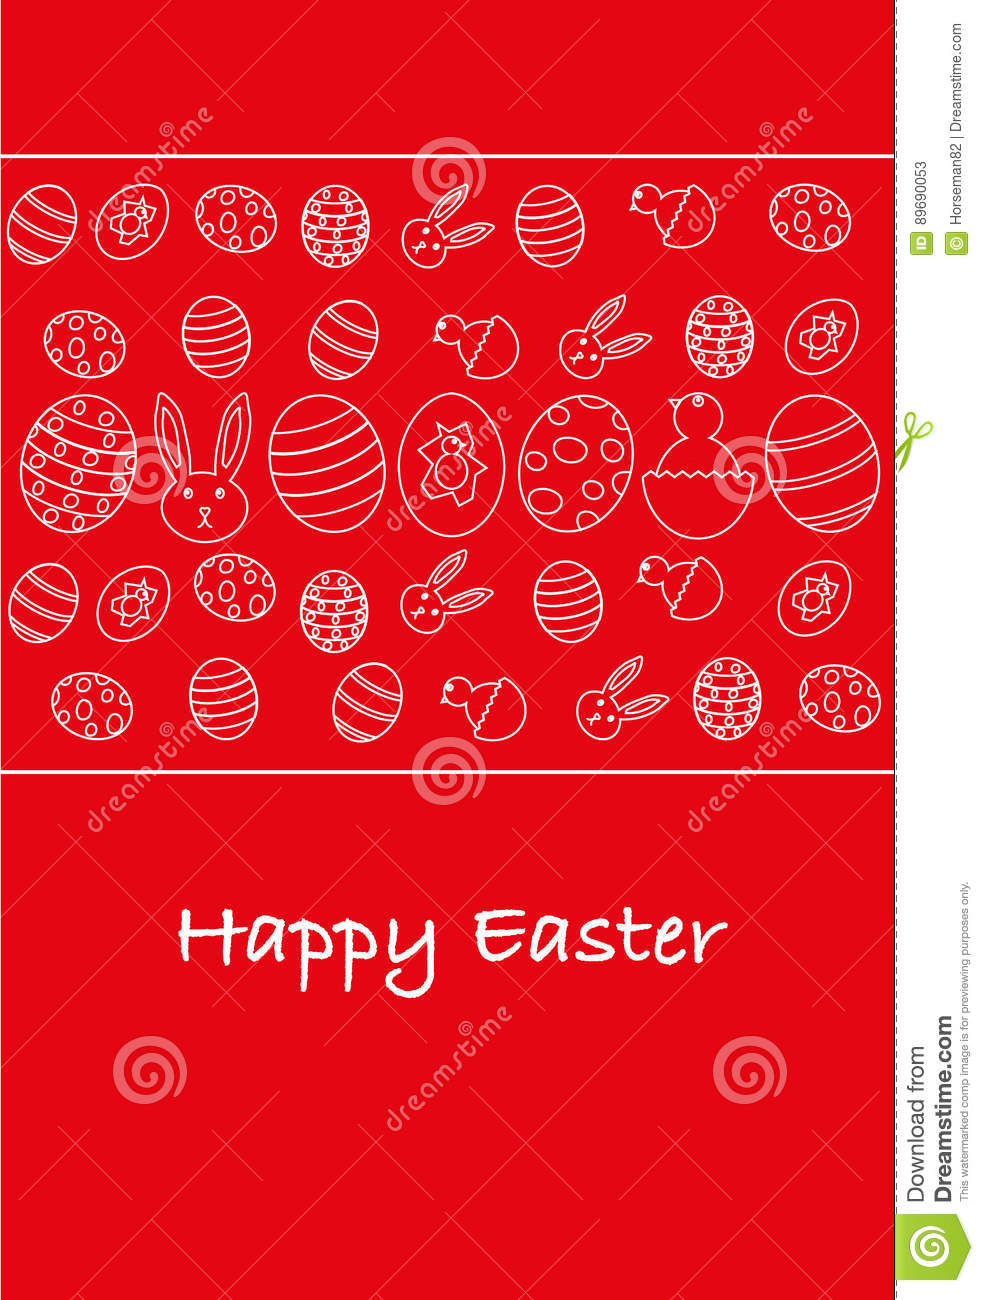 Happy Easter Greeting Card Italian Version Stock Illustration